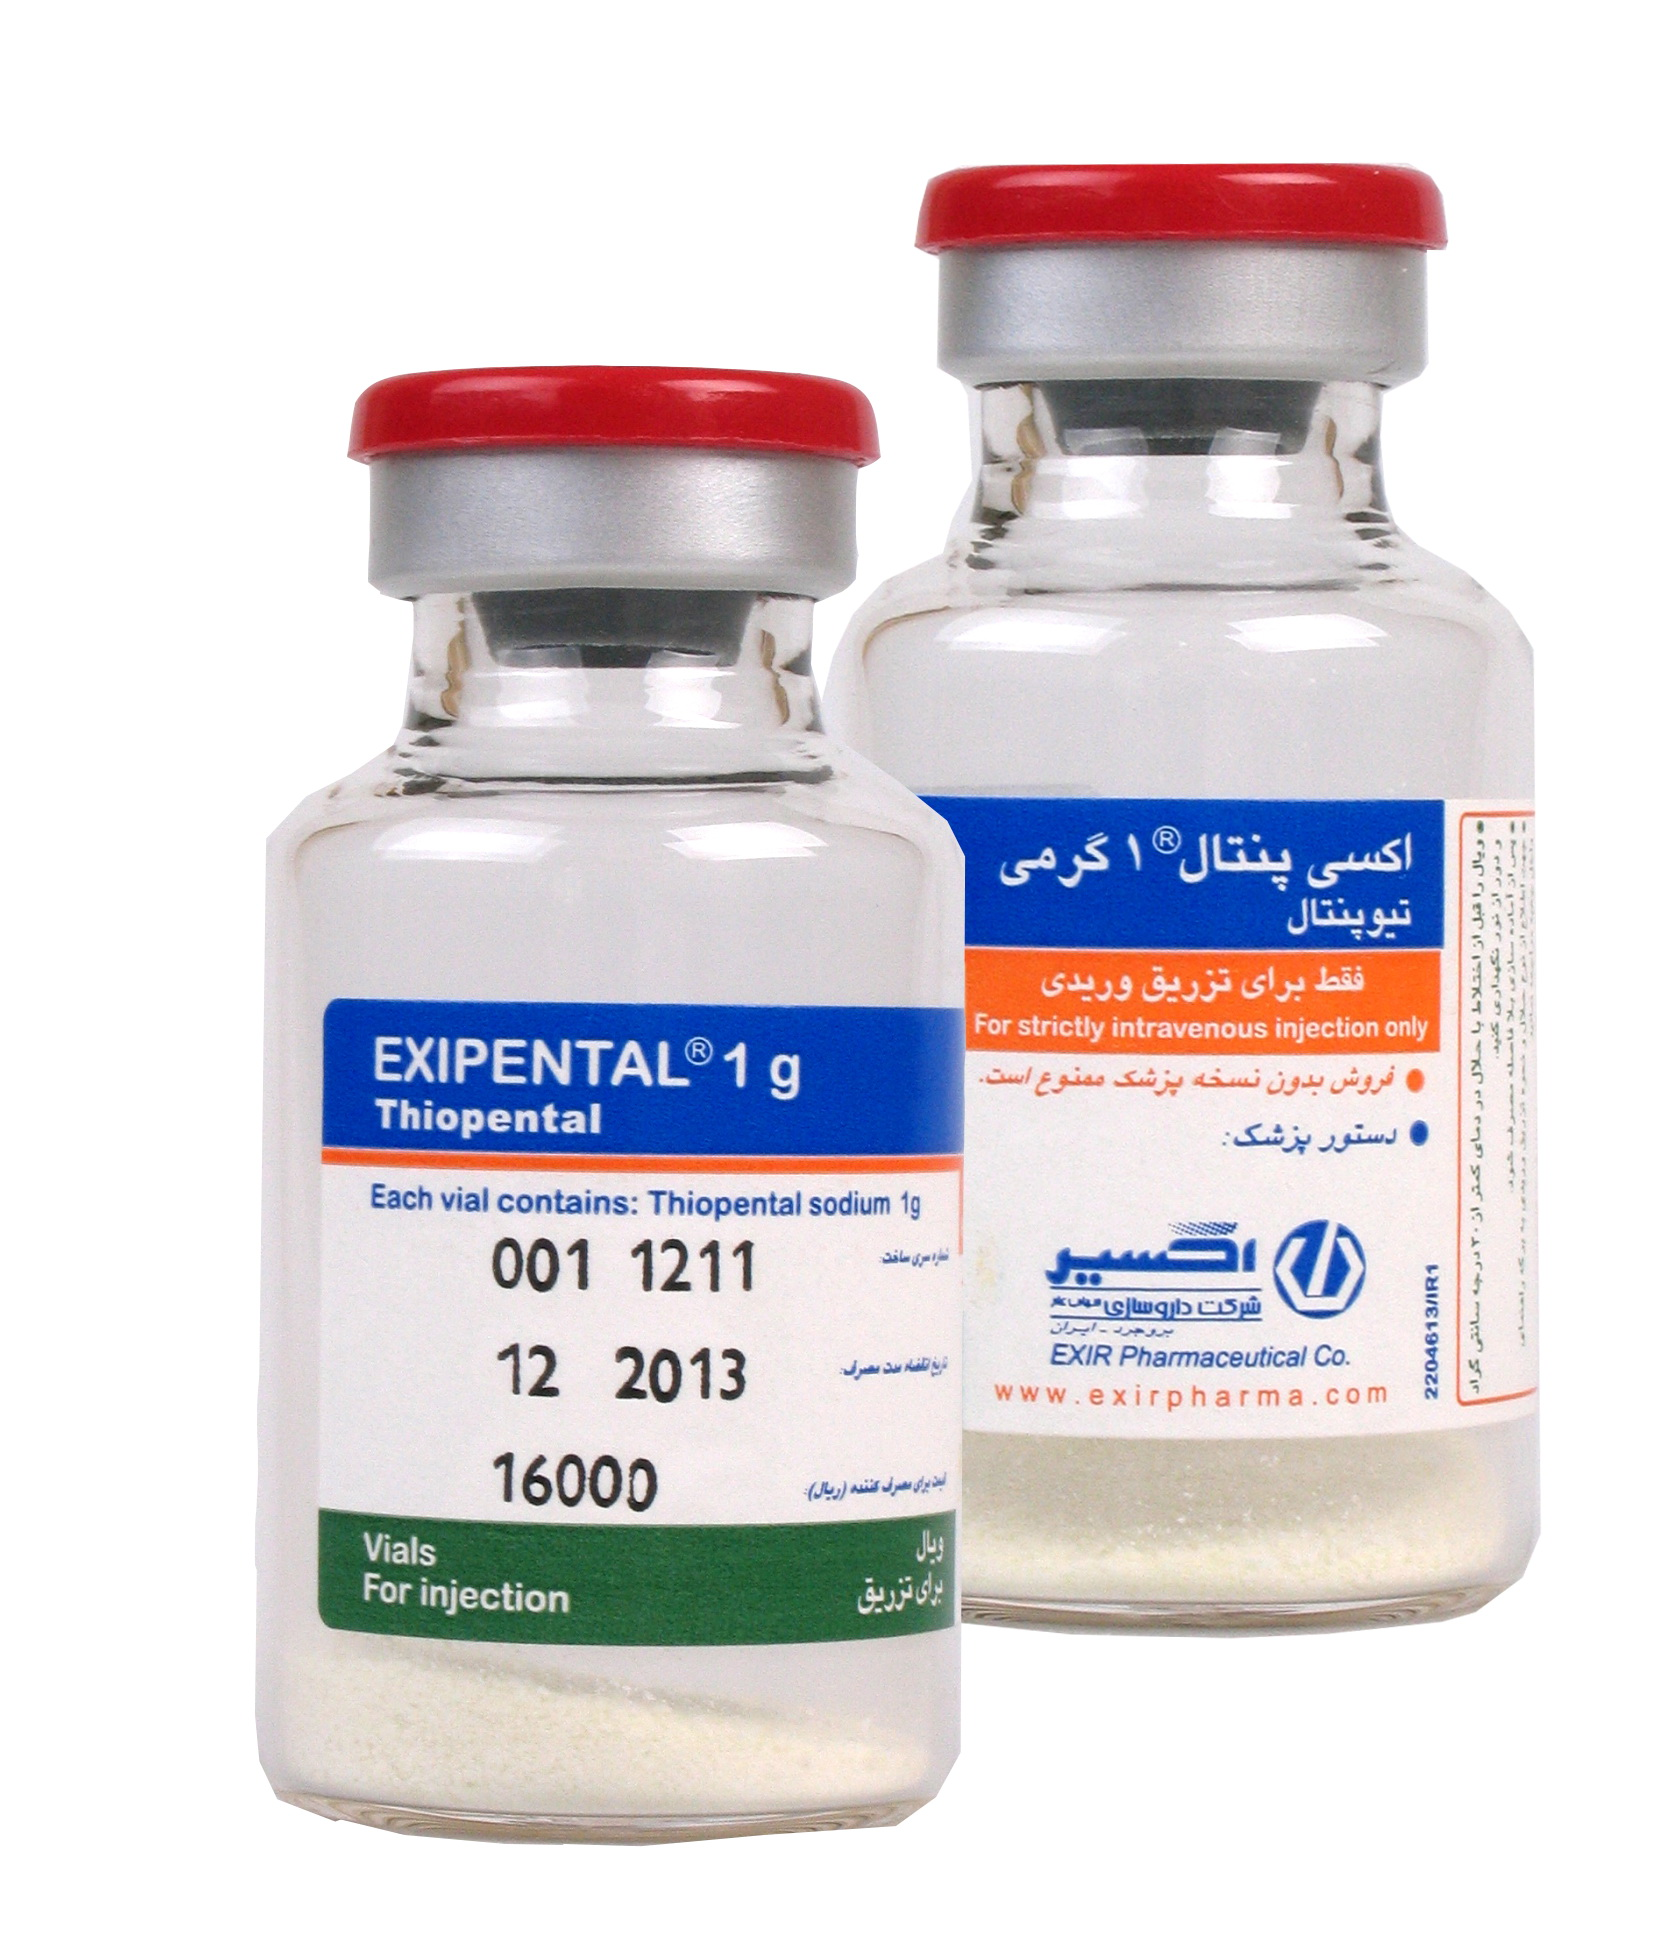 Powder vial - Parenteral